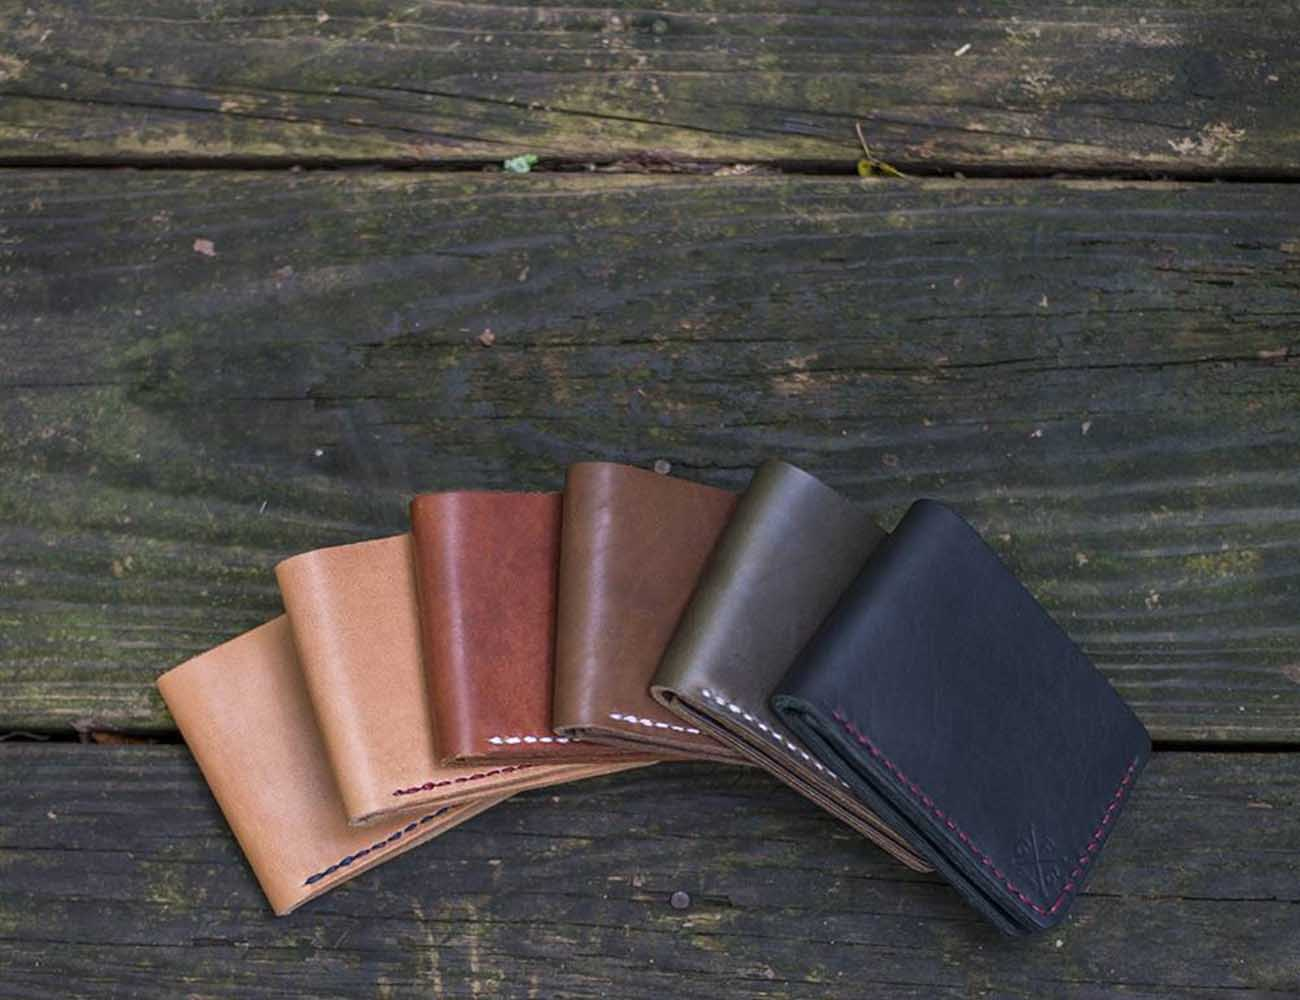 The Standard Wallet – Bi-Fold Design For 12-14 Cards